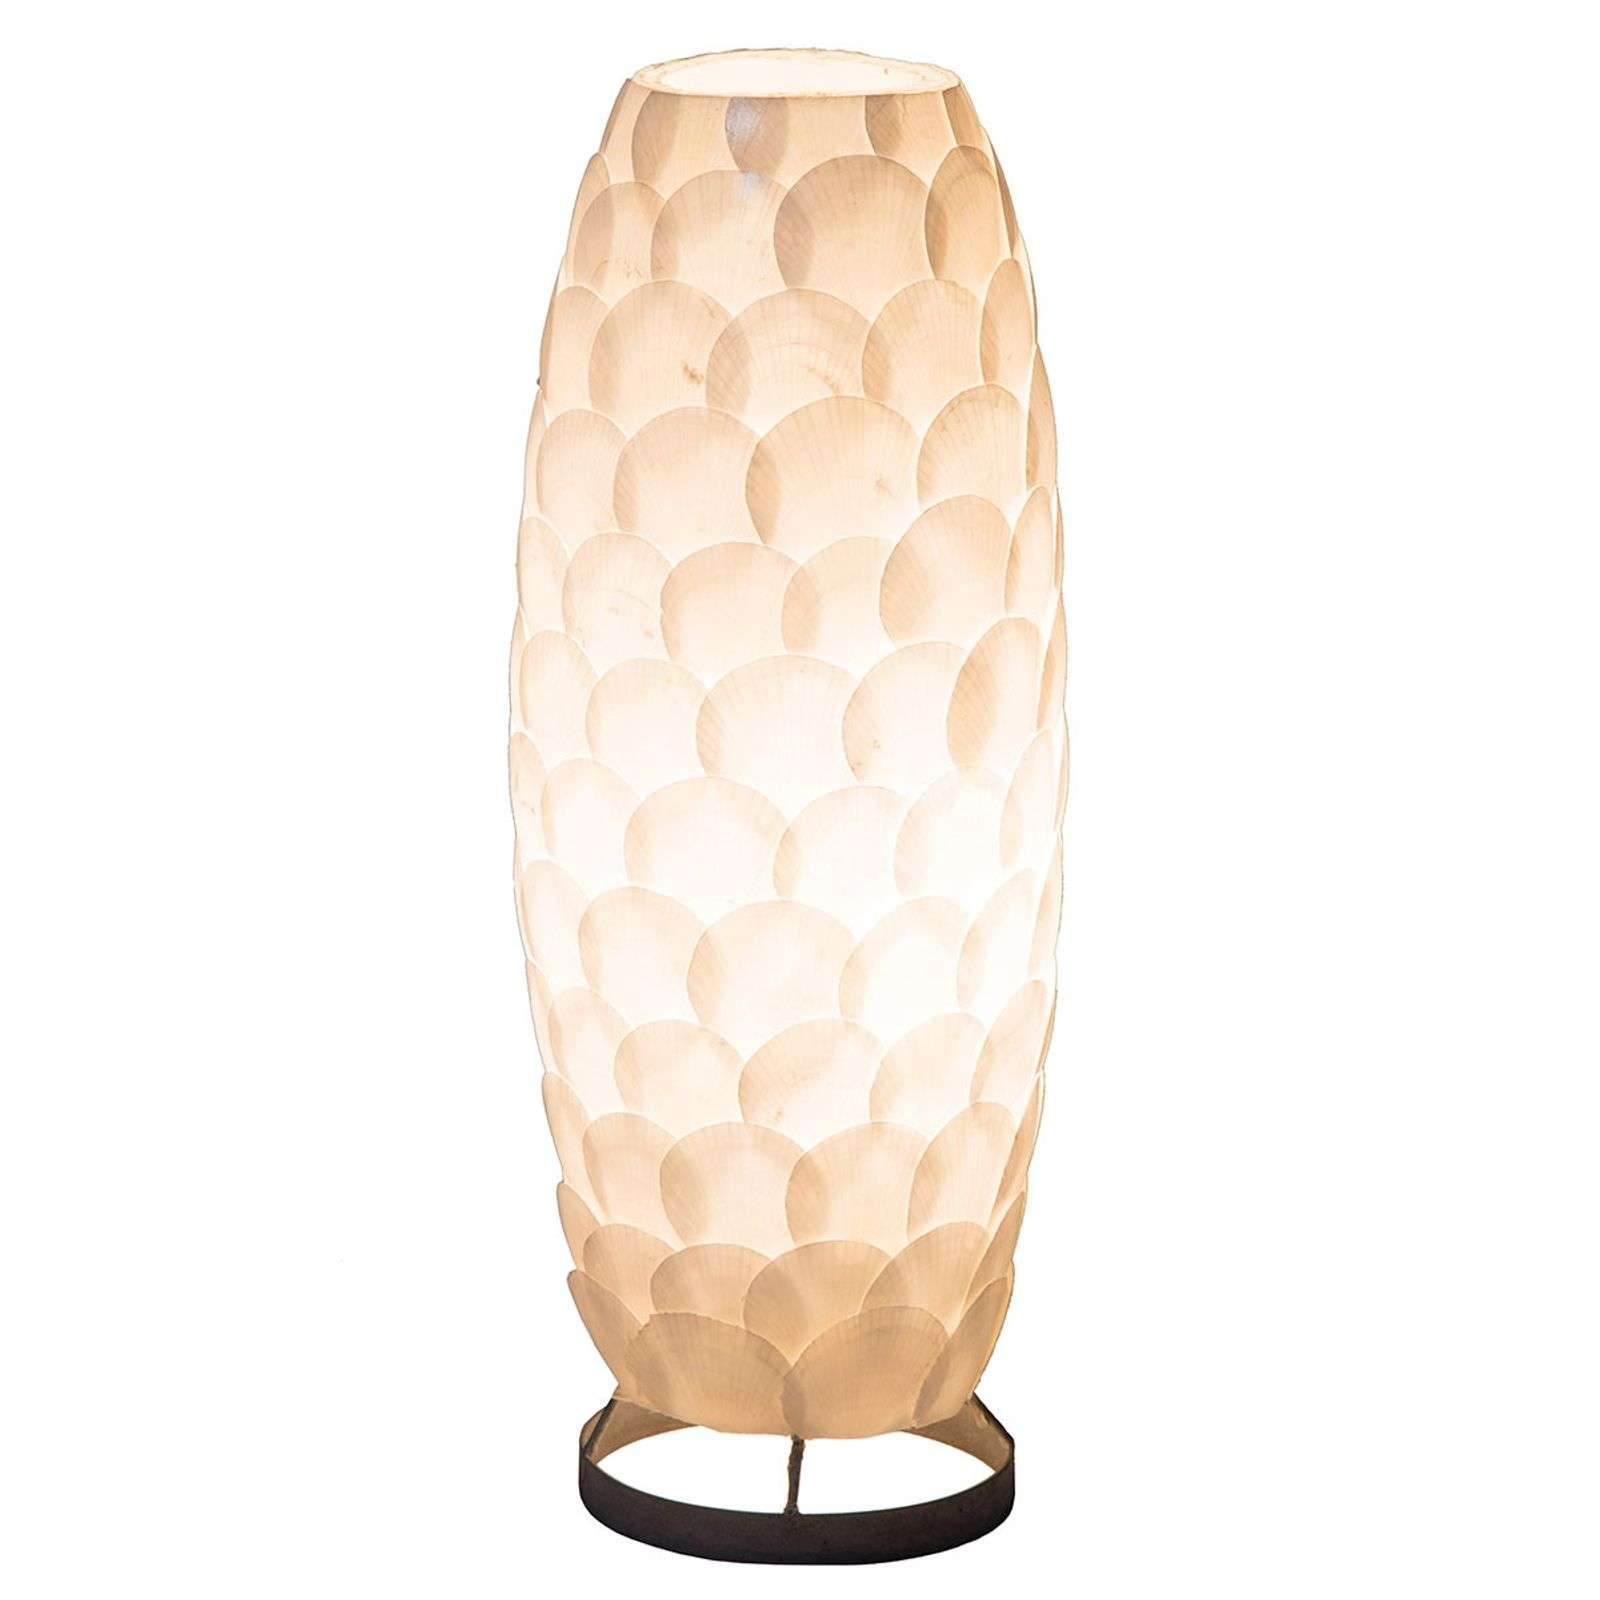 Lampe à poser Bali, disques coquille blanche